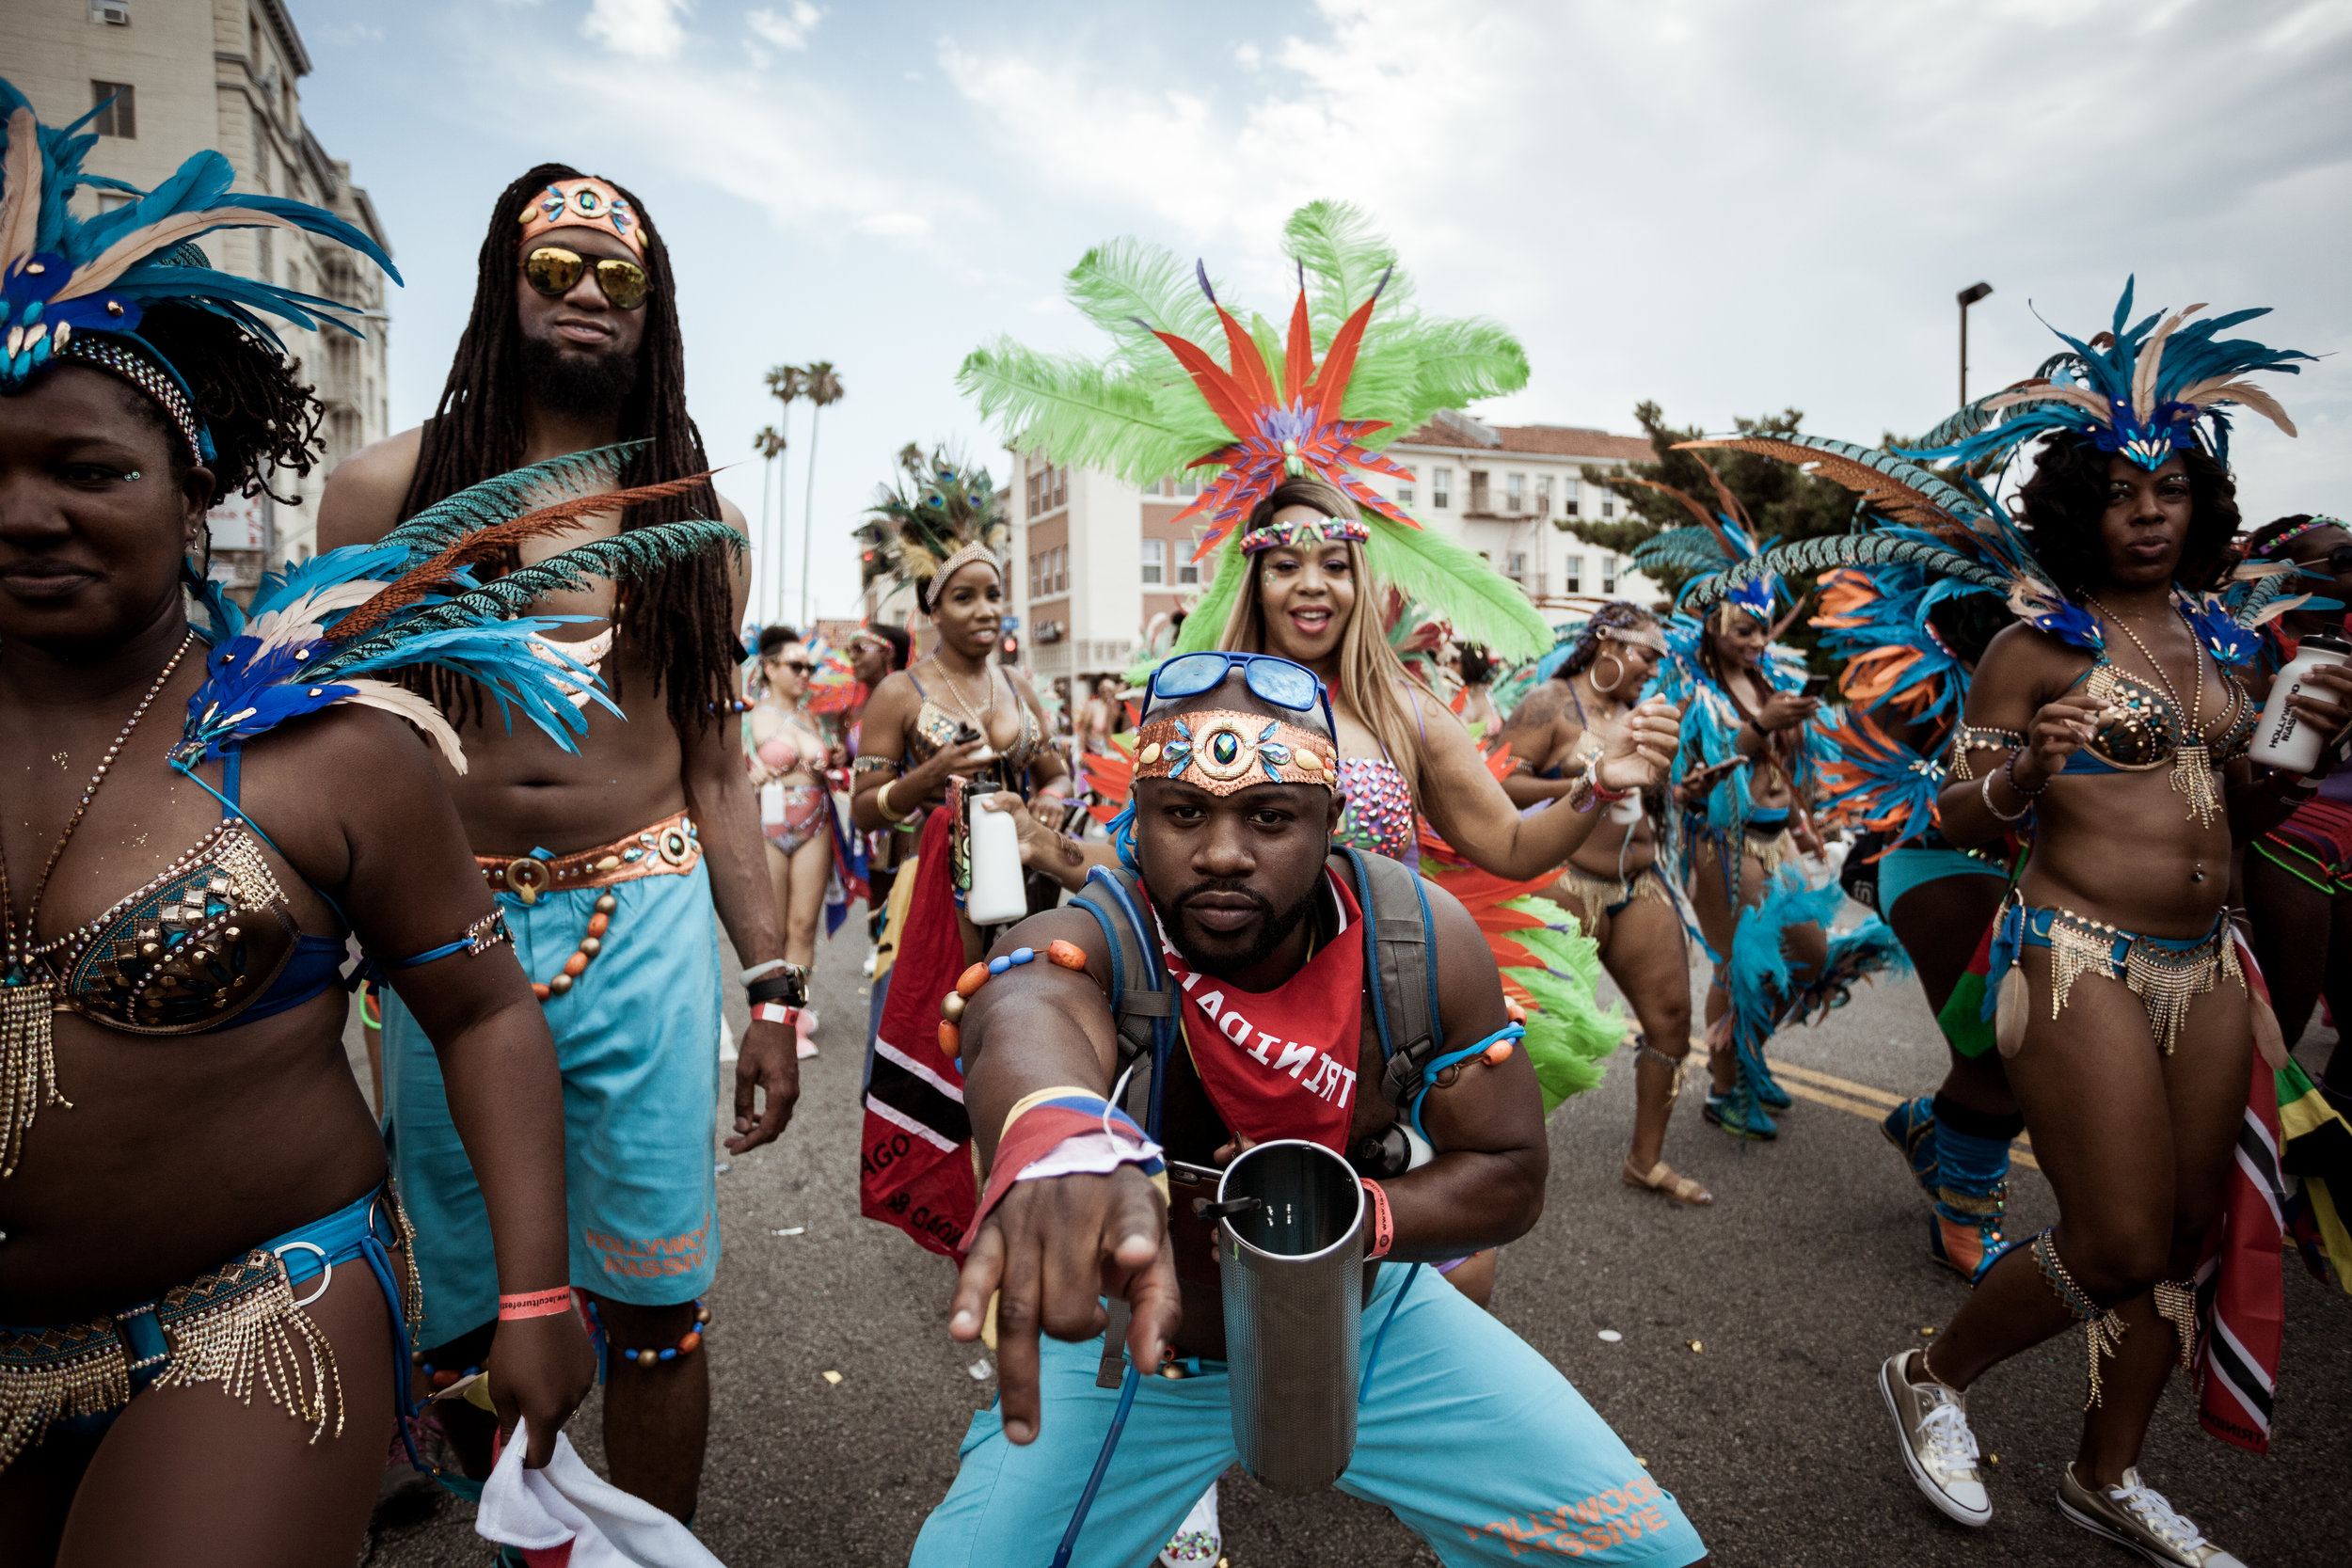 Chacon Images_Carnaval_Print-5728.jpg